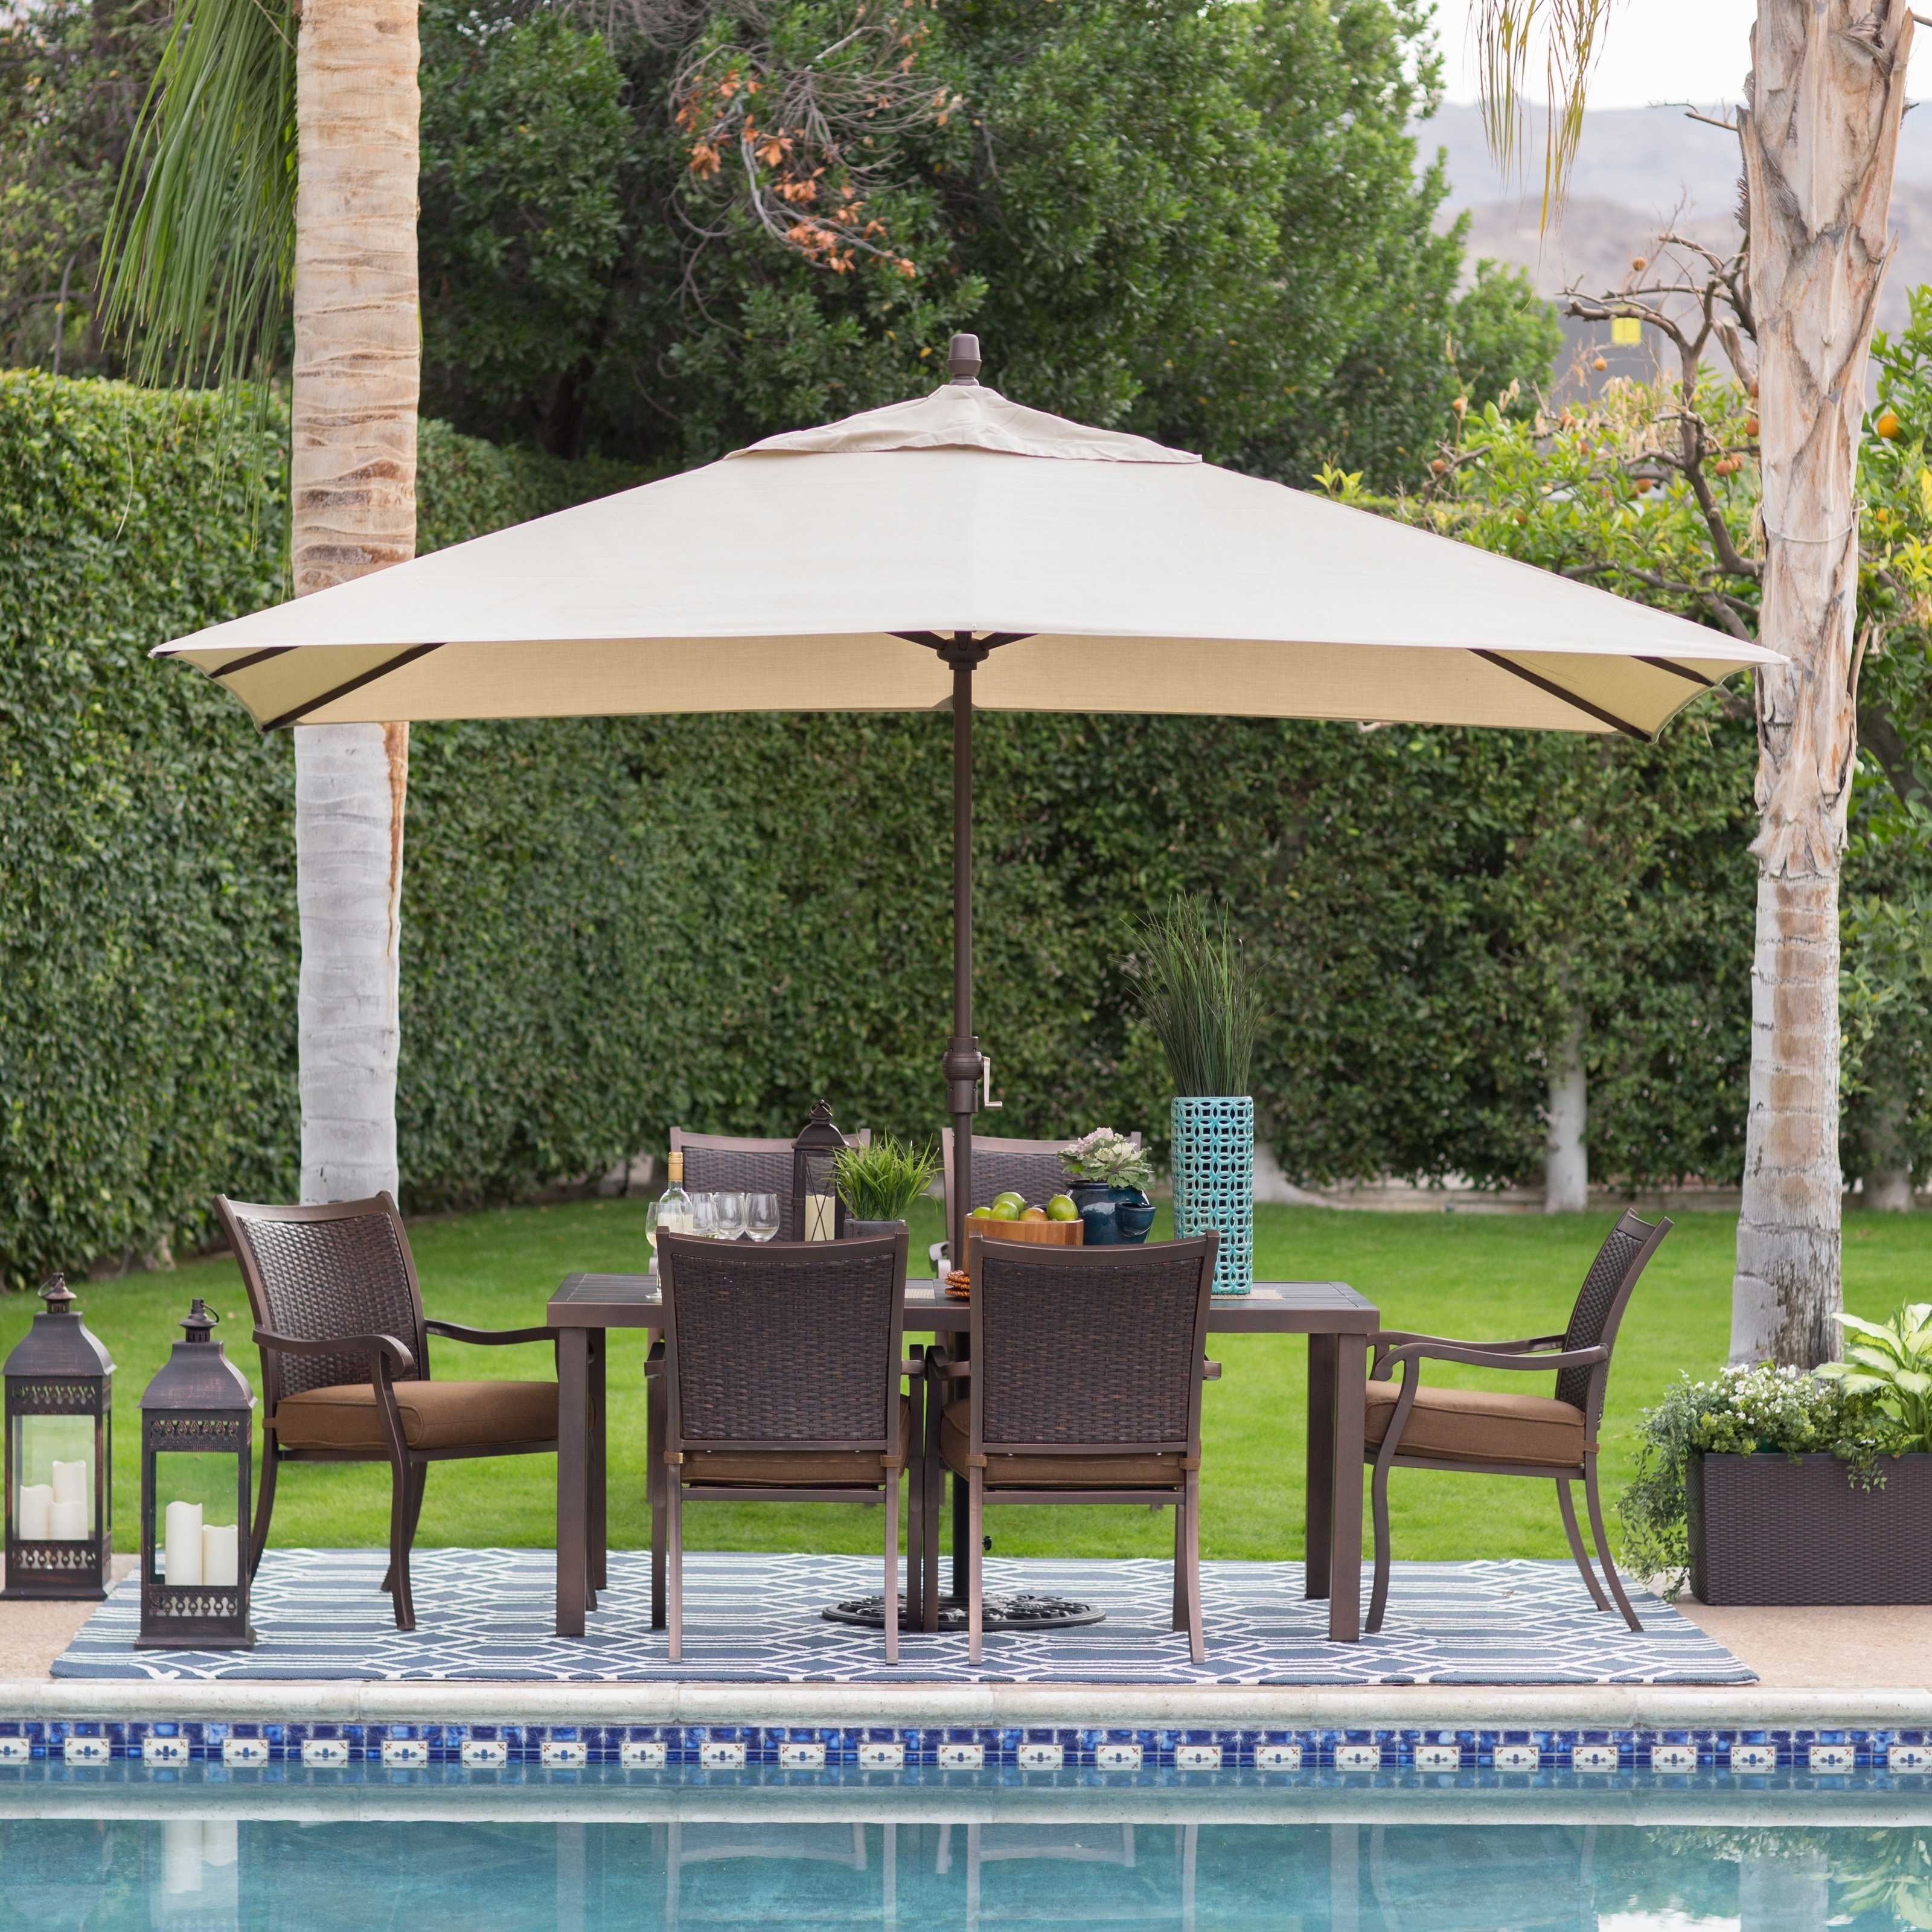 Most Recently Released Target Patio Umbrellas Intended For Lovely Target Patio Umbrella Exterior Inspiring Patio Decor Ideas (View 10 of 20)